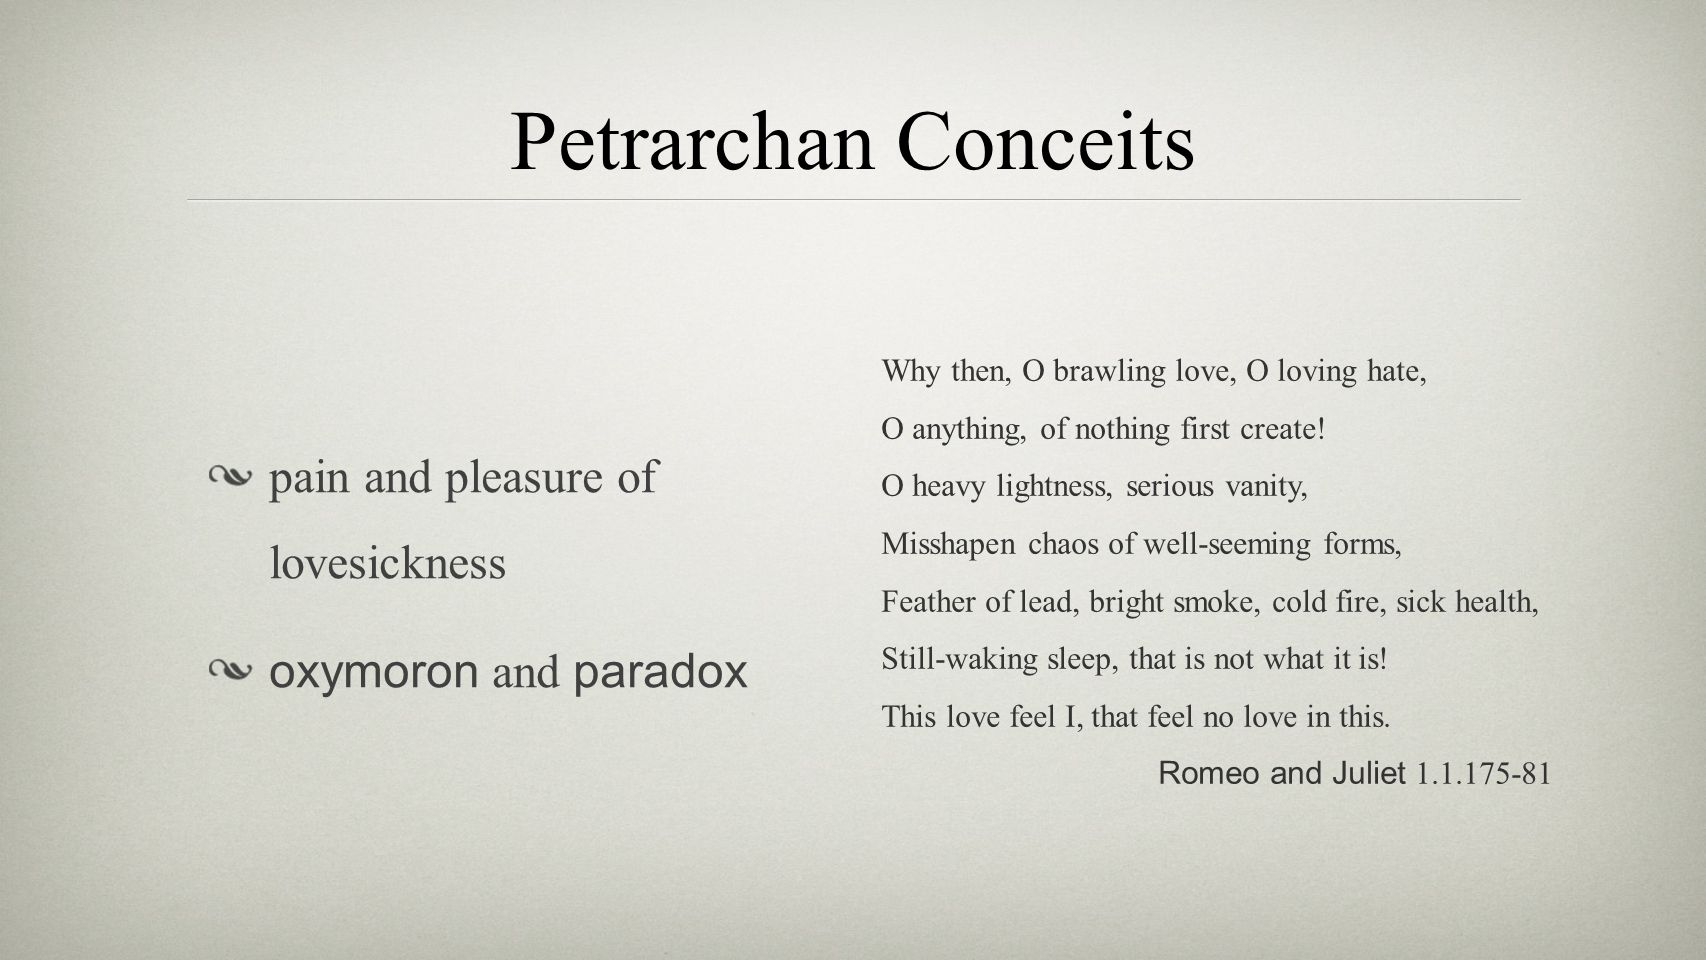 Petrarchan Conceits pain and pleasure of lovesickness oxymoron and paradox Why then, O brawling love, O loving hate, O anything, of nothing first crea